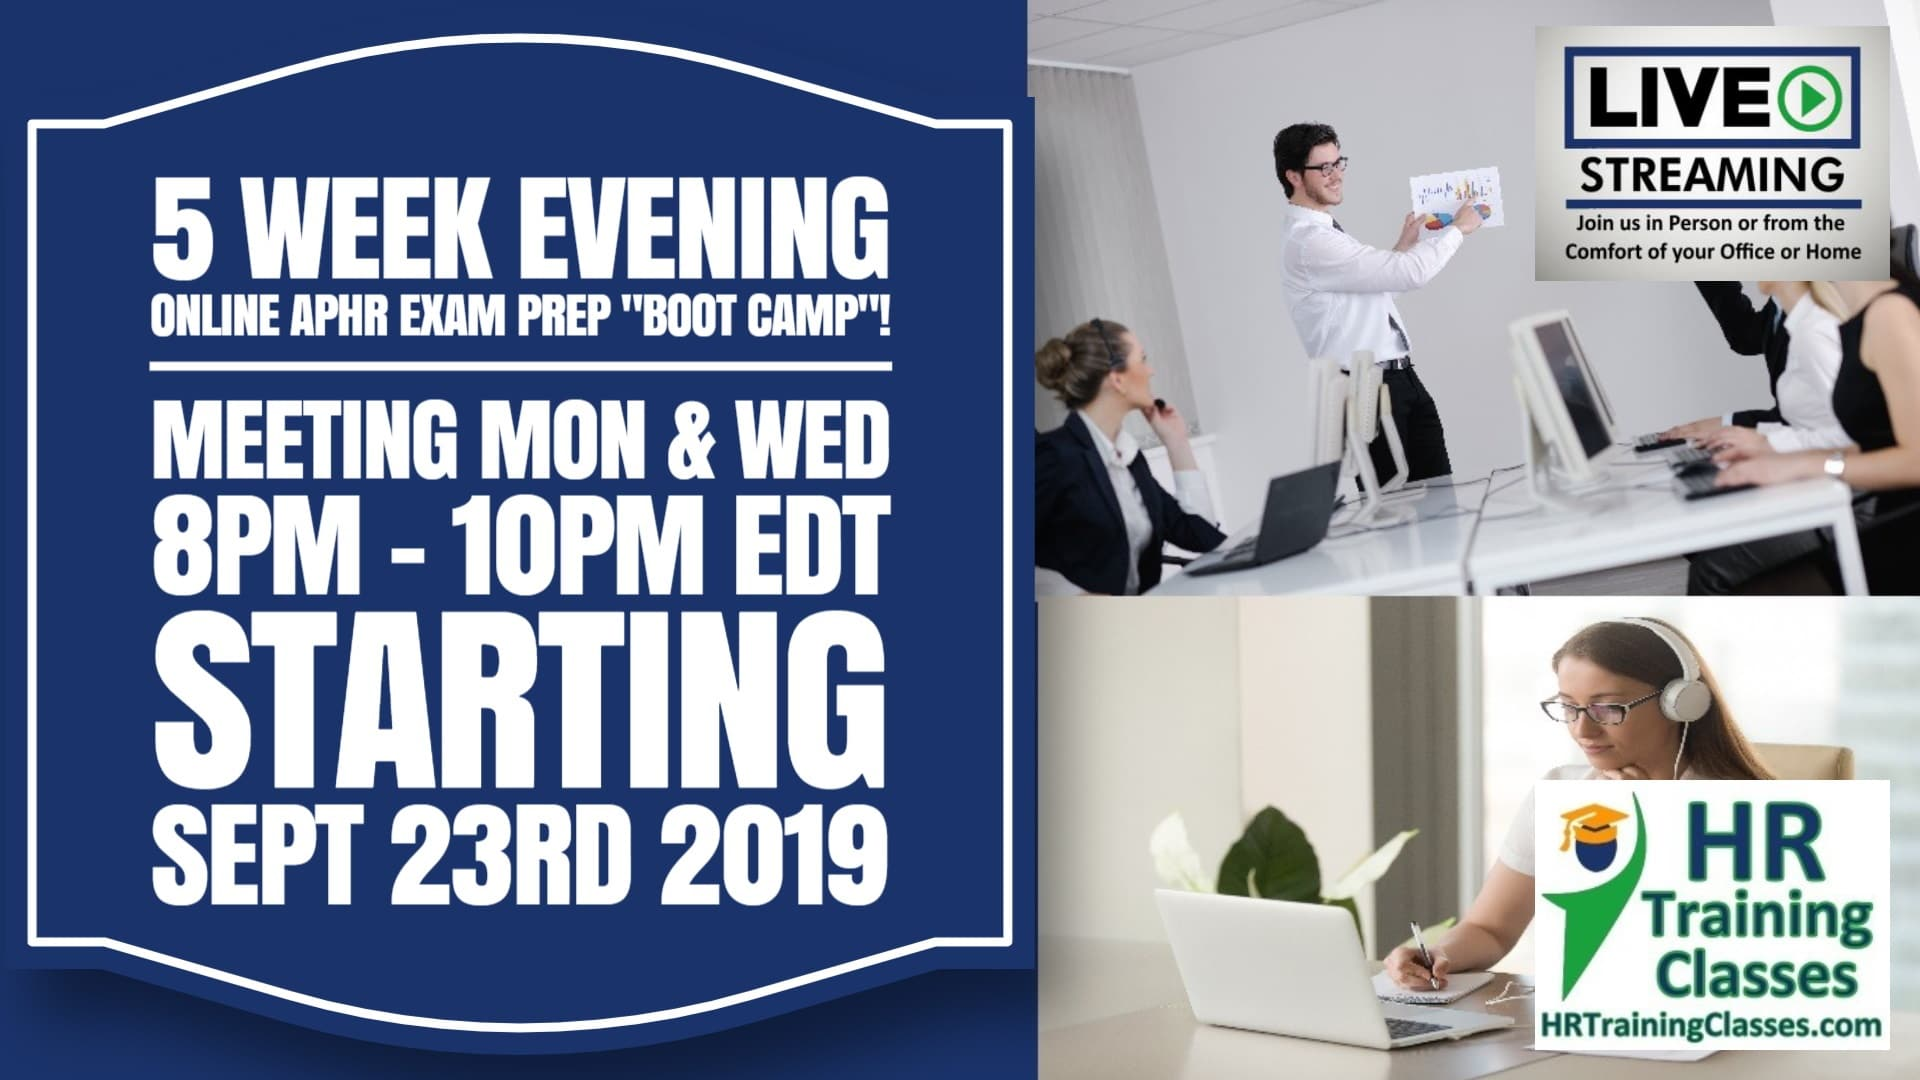 5 Week Evening Online aPHR Exam Prep Boot Camp Starting Sep 23 2019